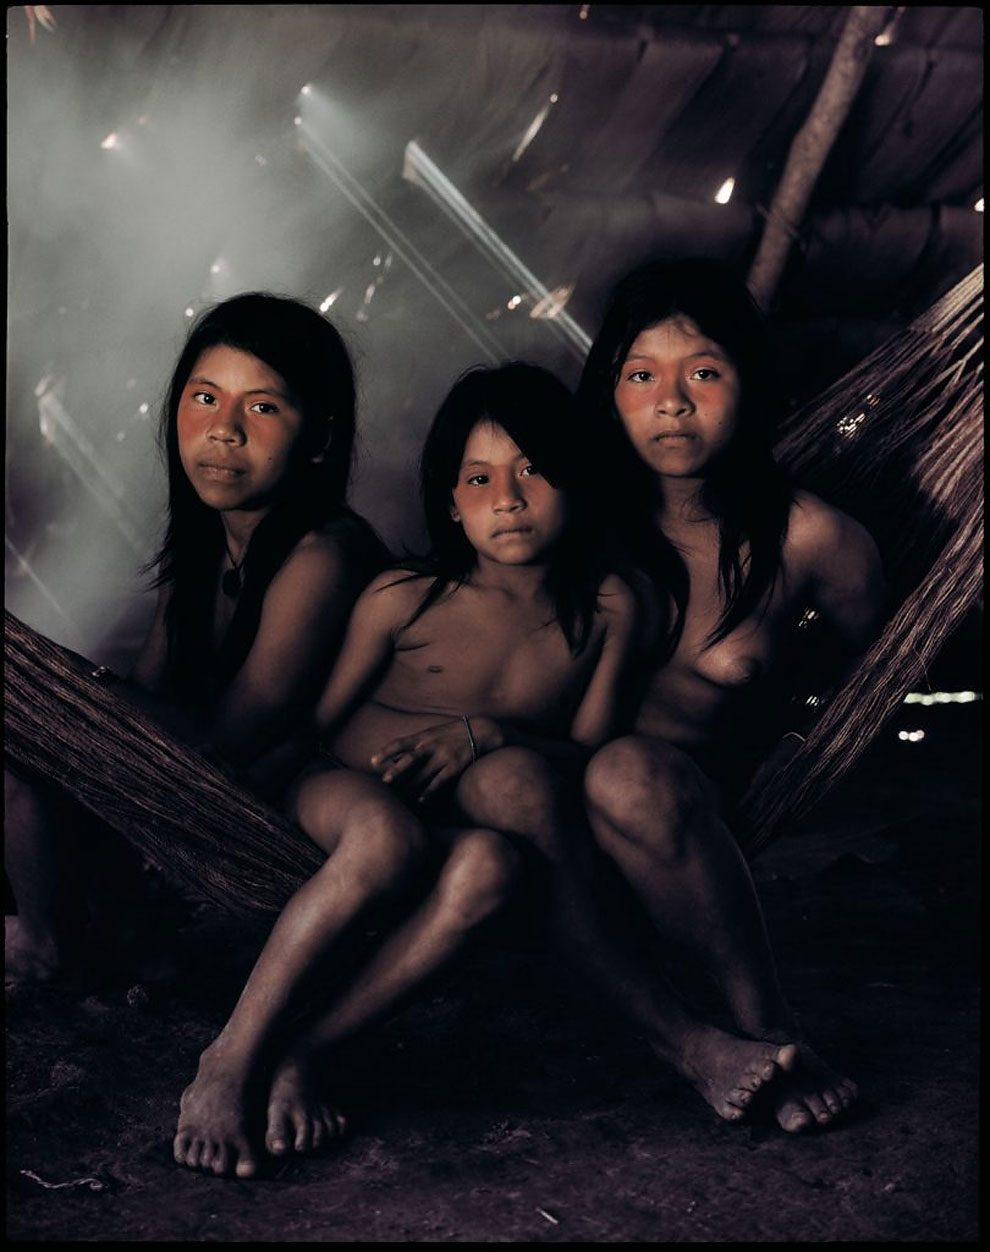 tribu-indigeni-mondo-fotografia-before-they-pass-away-jimmy-nelson-10